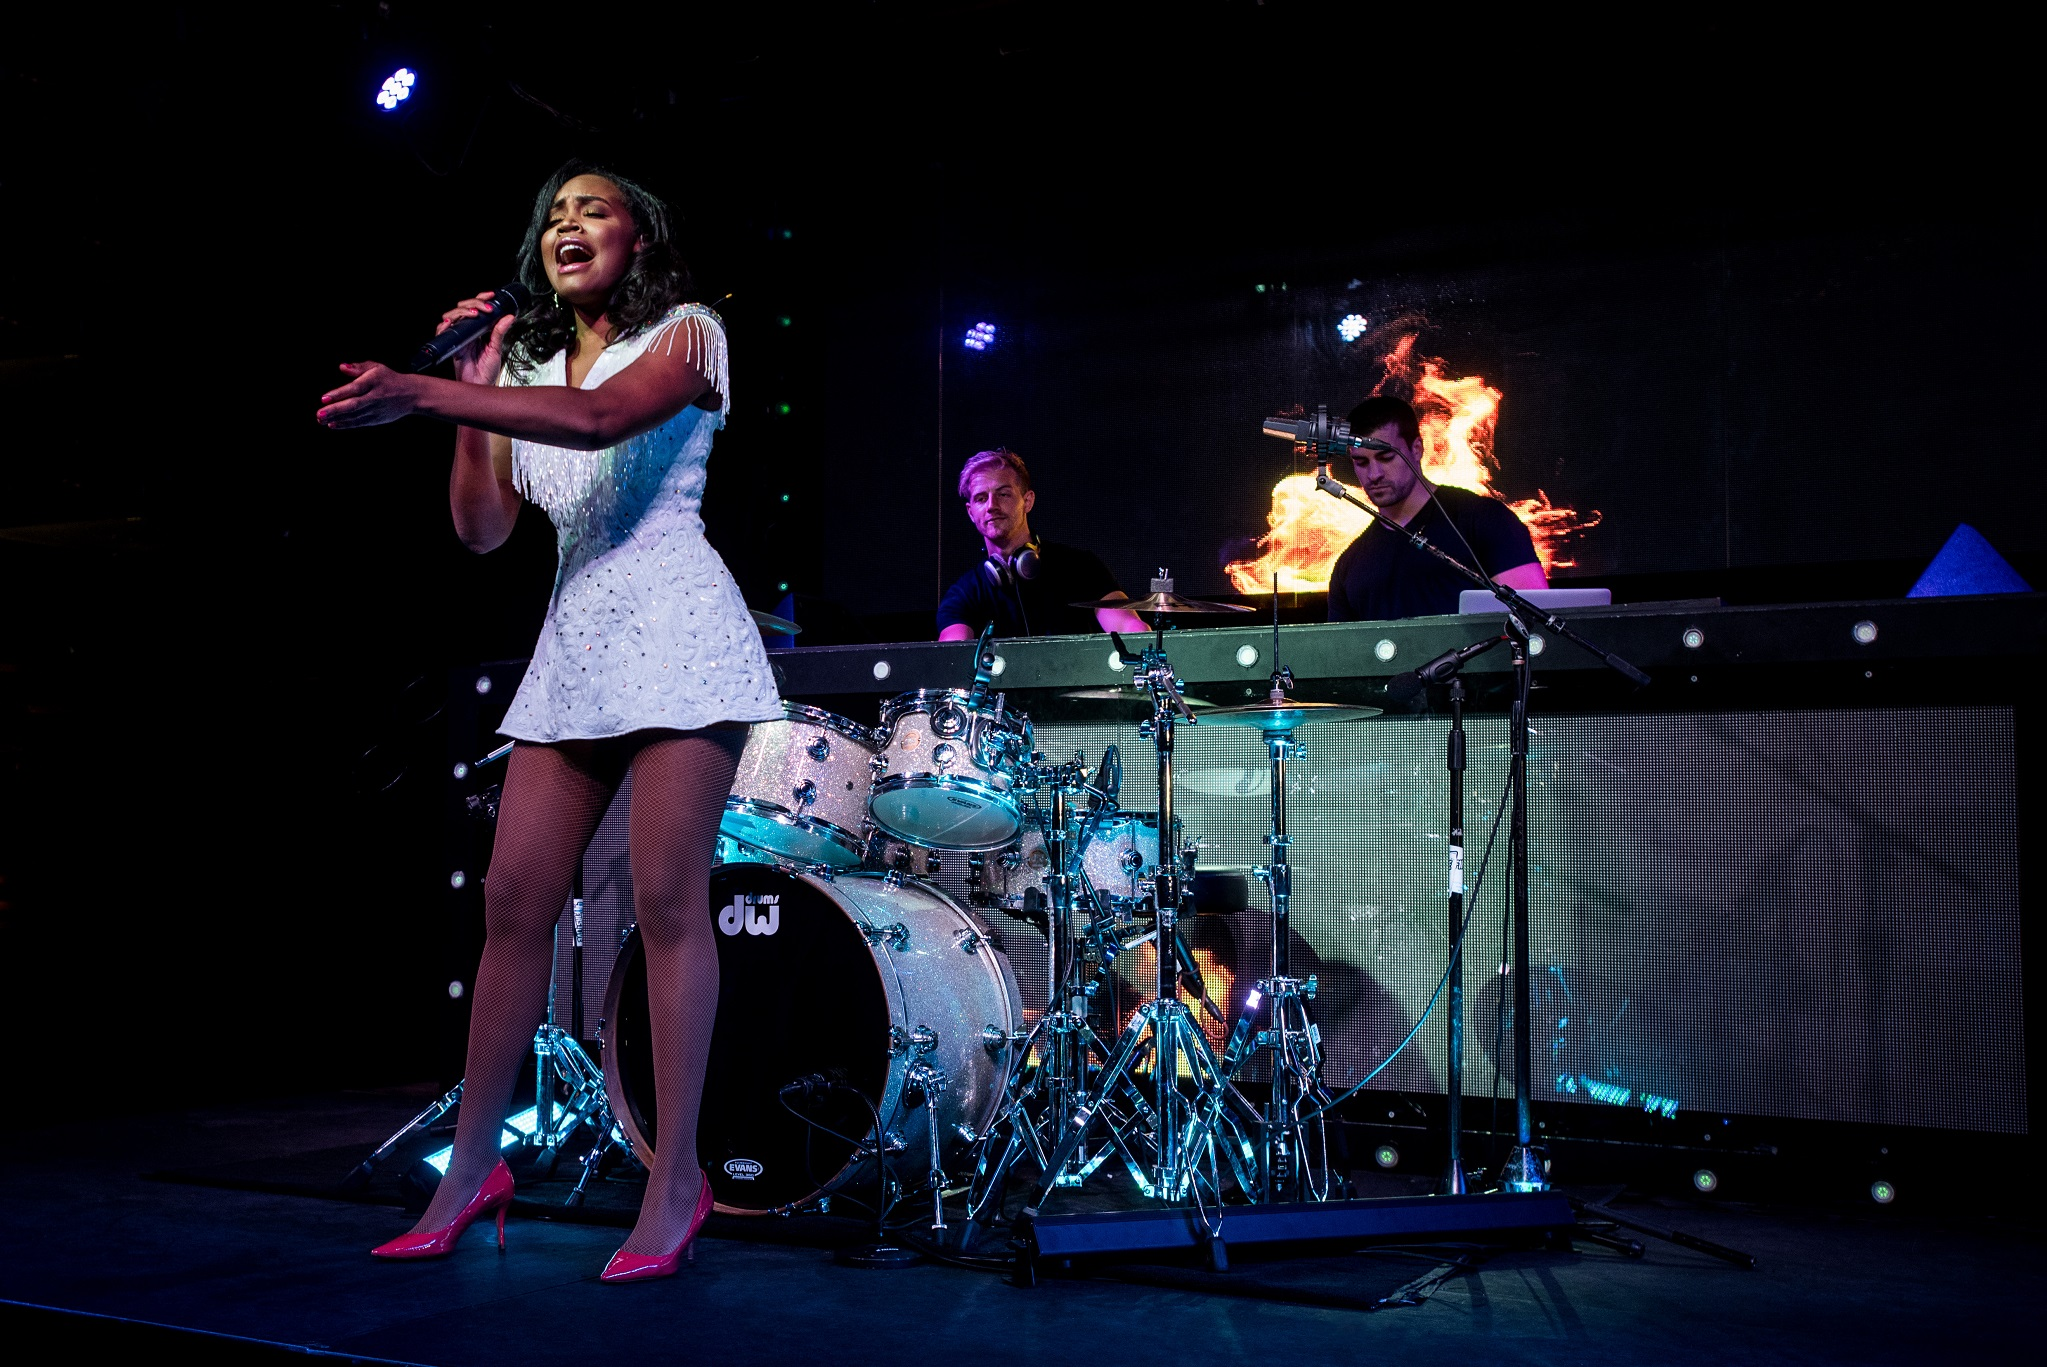 Glorious-Singer-Livetronica Drummer-Producer-Songwriter-Marquee-Nightclub-Video-New York-NY-24lr.jpg